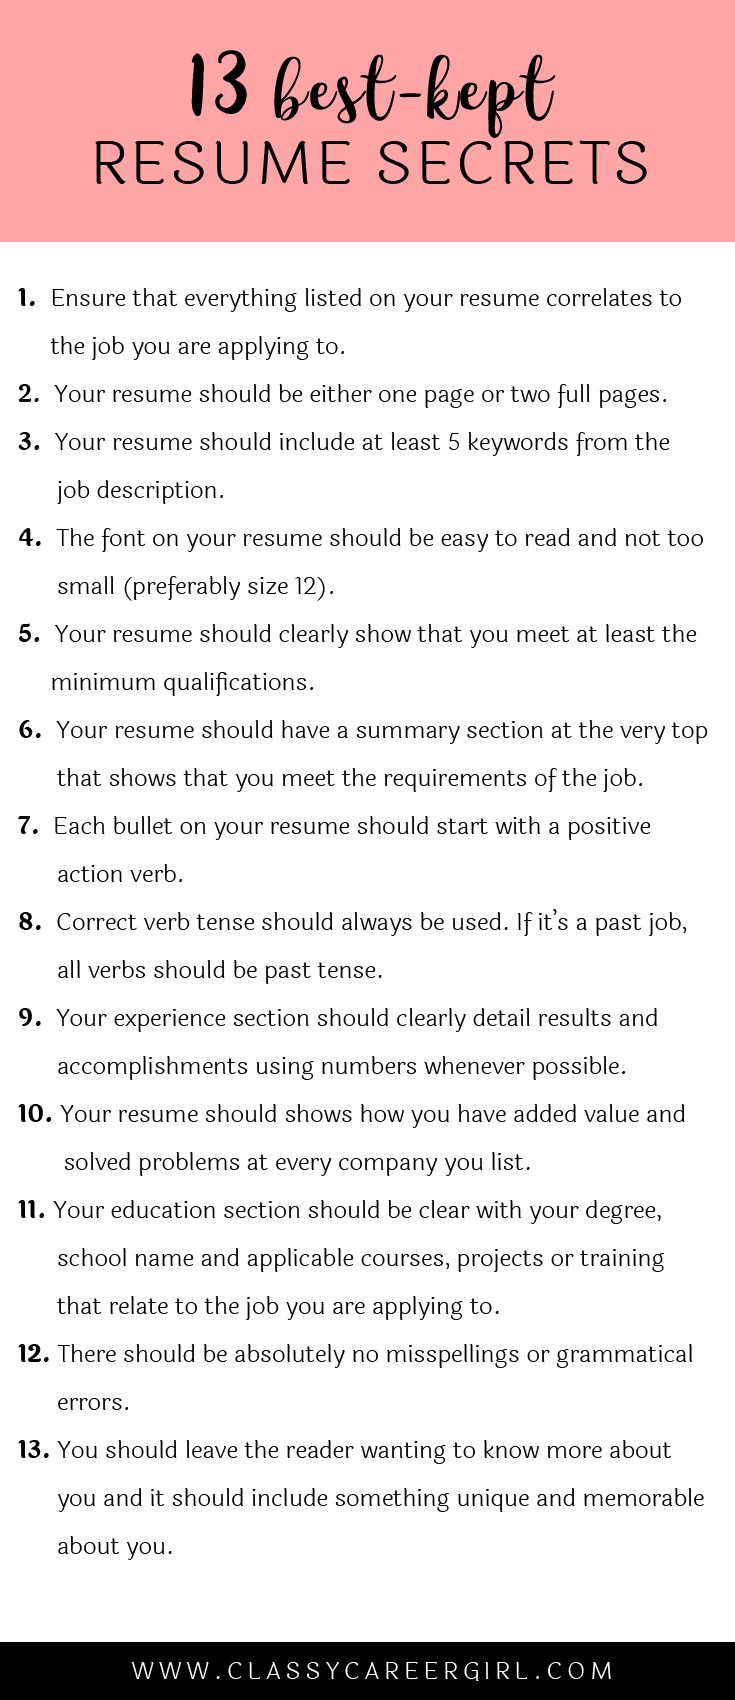 Opposenewapstandardsus  Mesmerizing  Ideas About Resume On Pinterest  Cv Format Resume Cv And  With Engaging Some Hiring Managers Will Toss Your Resume Out If You Dont Know These  With Cute Junior Financial Analyst Resume Also Crane Operator Resume In Addition Accounting Major Resume And Entry Level Resume Objective Statements As Well As Software Test Engineer Resume Additionally How Do You Write A Cover Letter For A Resume From Pinterestcom With Opposenewapstandardsus  Engaging  Ideas About Resume On Pinterest  Cv Format Resume Cv And  With Cute Some Hiring Managers Will Toss Your Resume Out If You Dont Know These  And Mesmerizing Junior Financial Analyst Resume Also Crane Operator Resume In Addition Accounting Major Resume From Pinterestcom